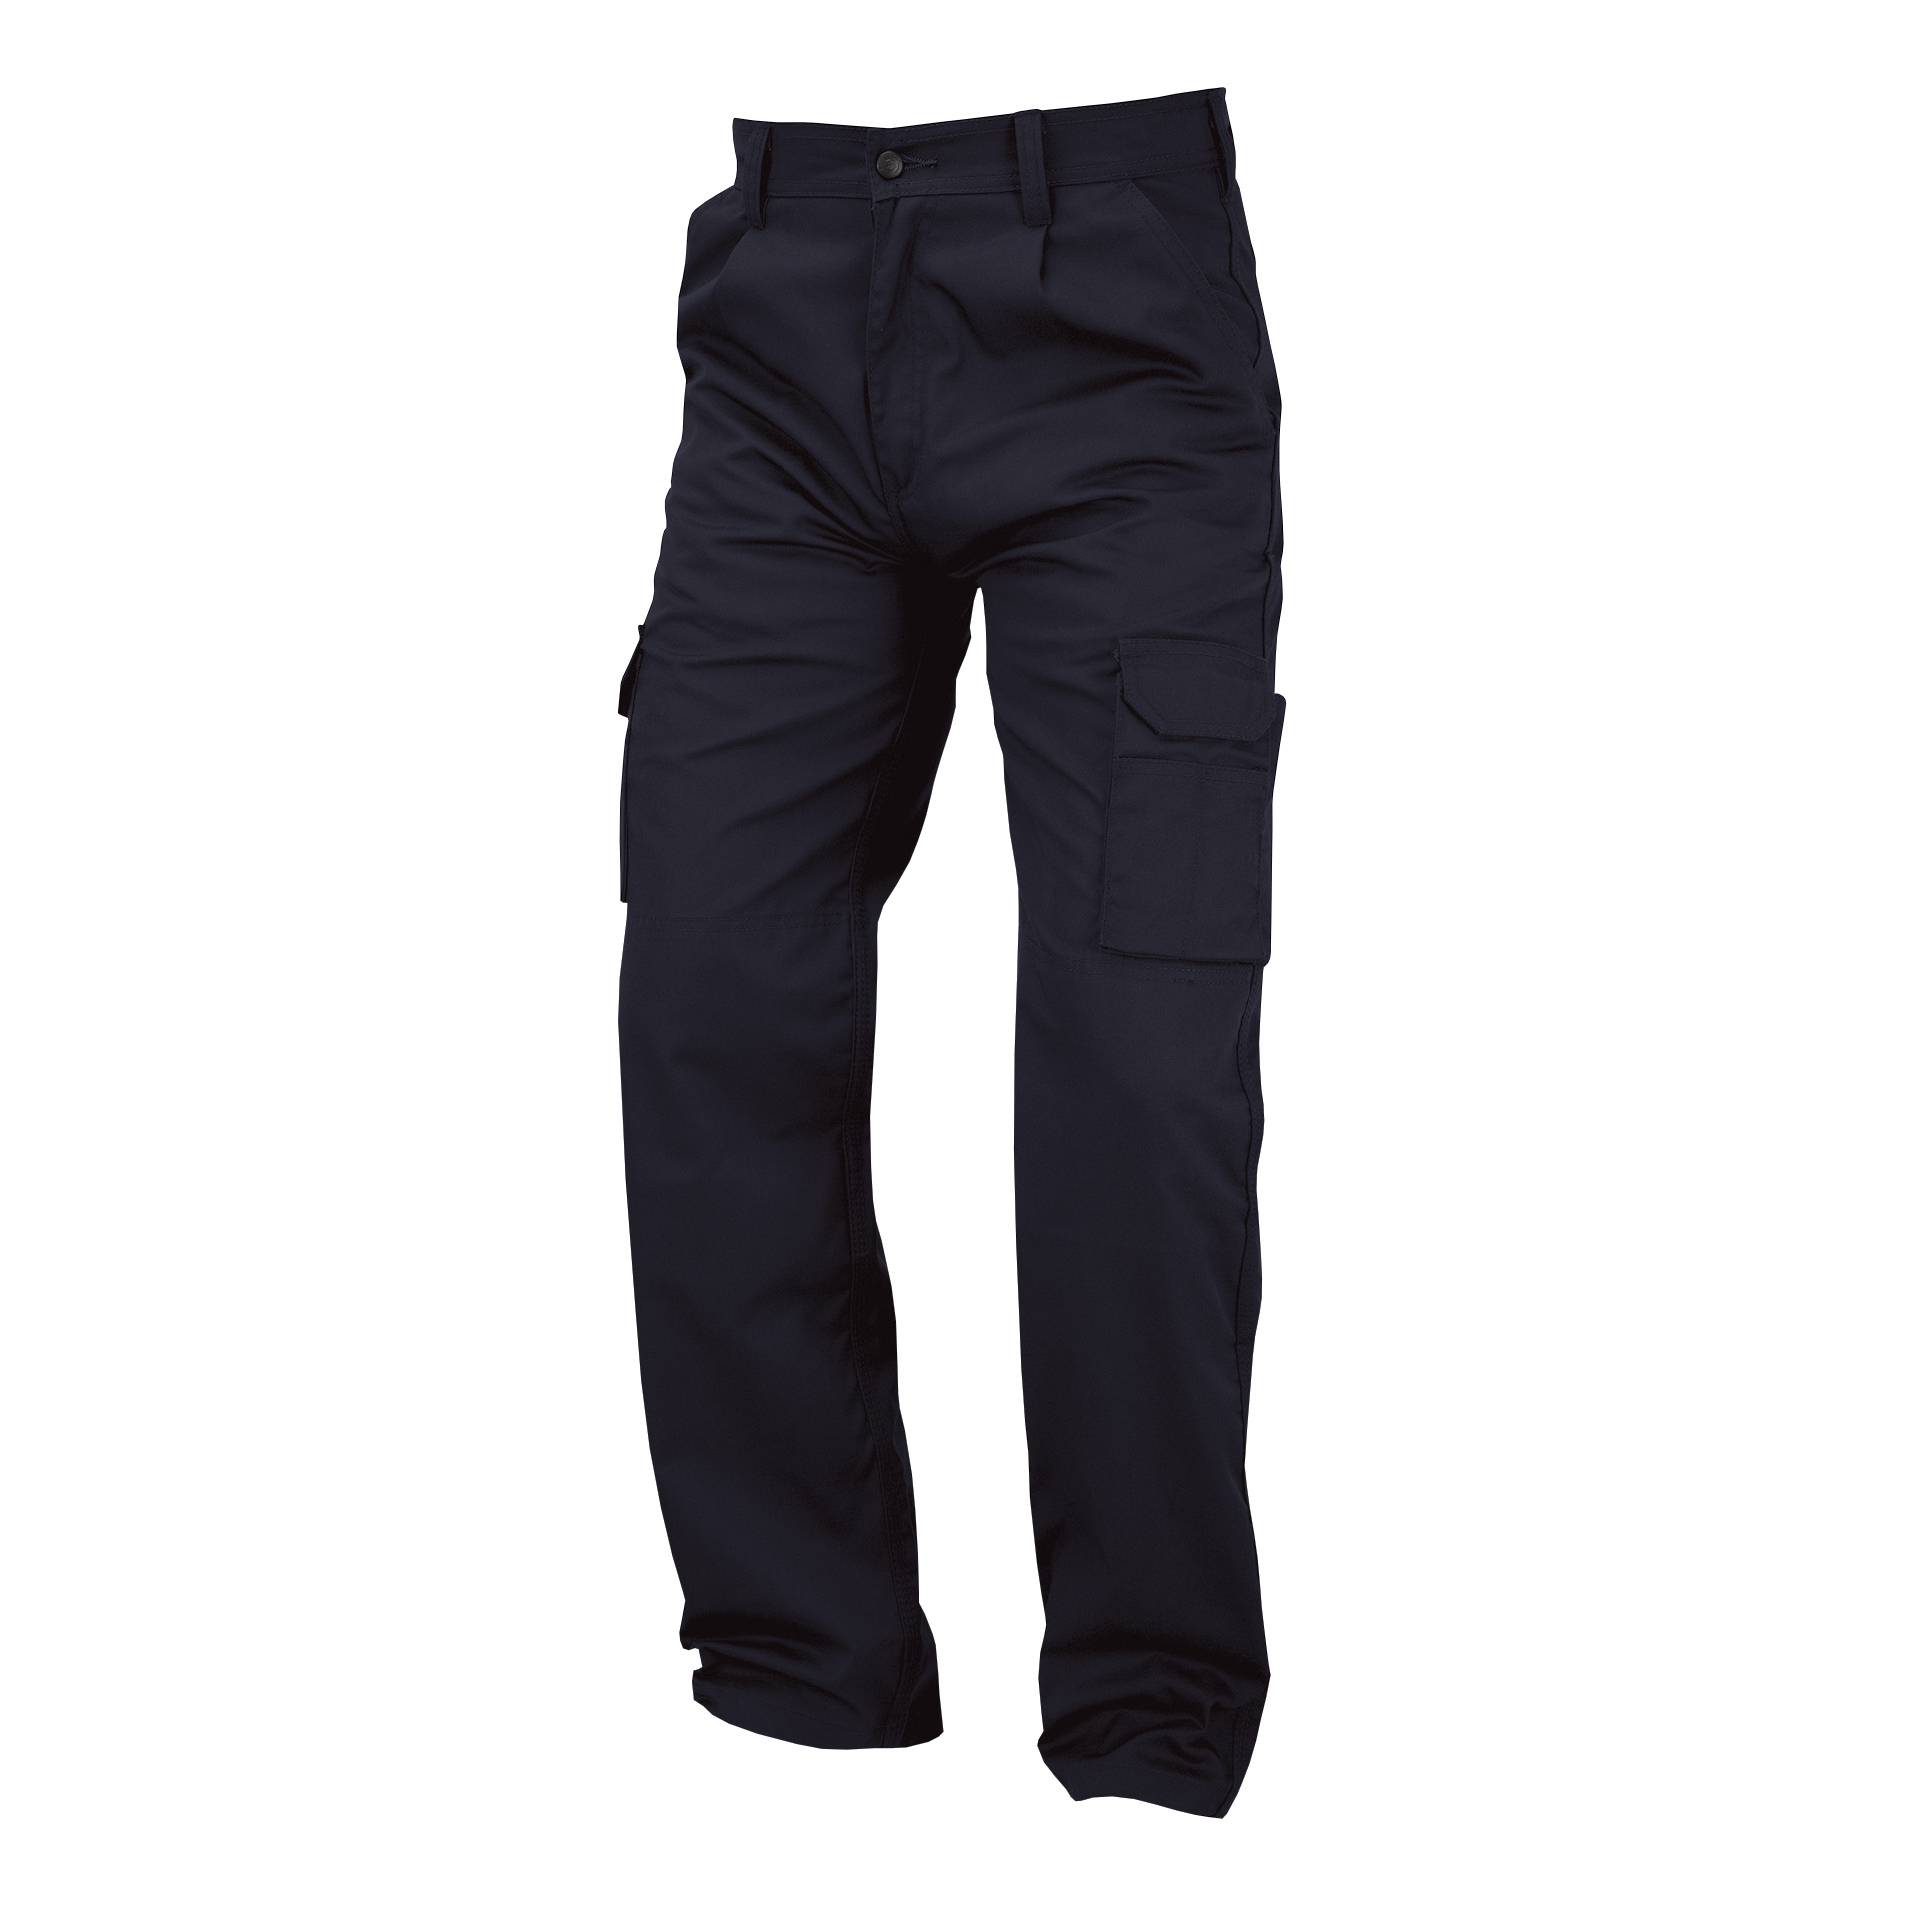 Combat Trousers Polycotton with Pockets 34in Long Navy Blue Ref PCTHWN34T 1-3 Days Lead Time